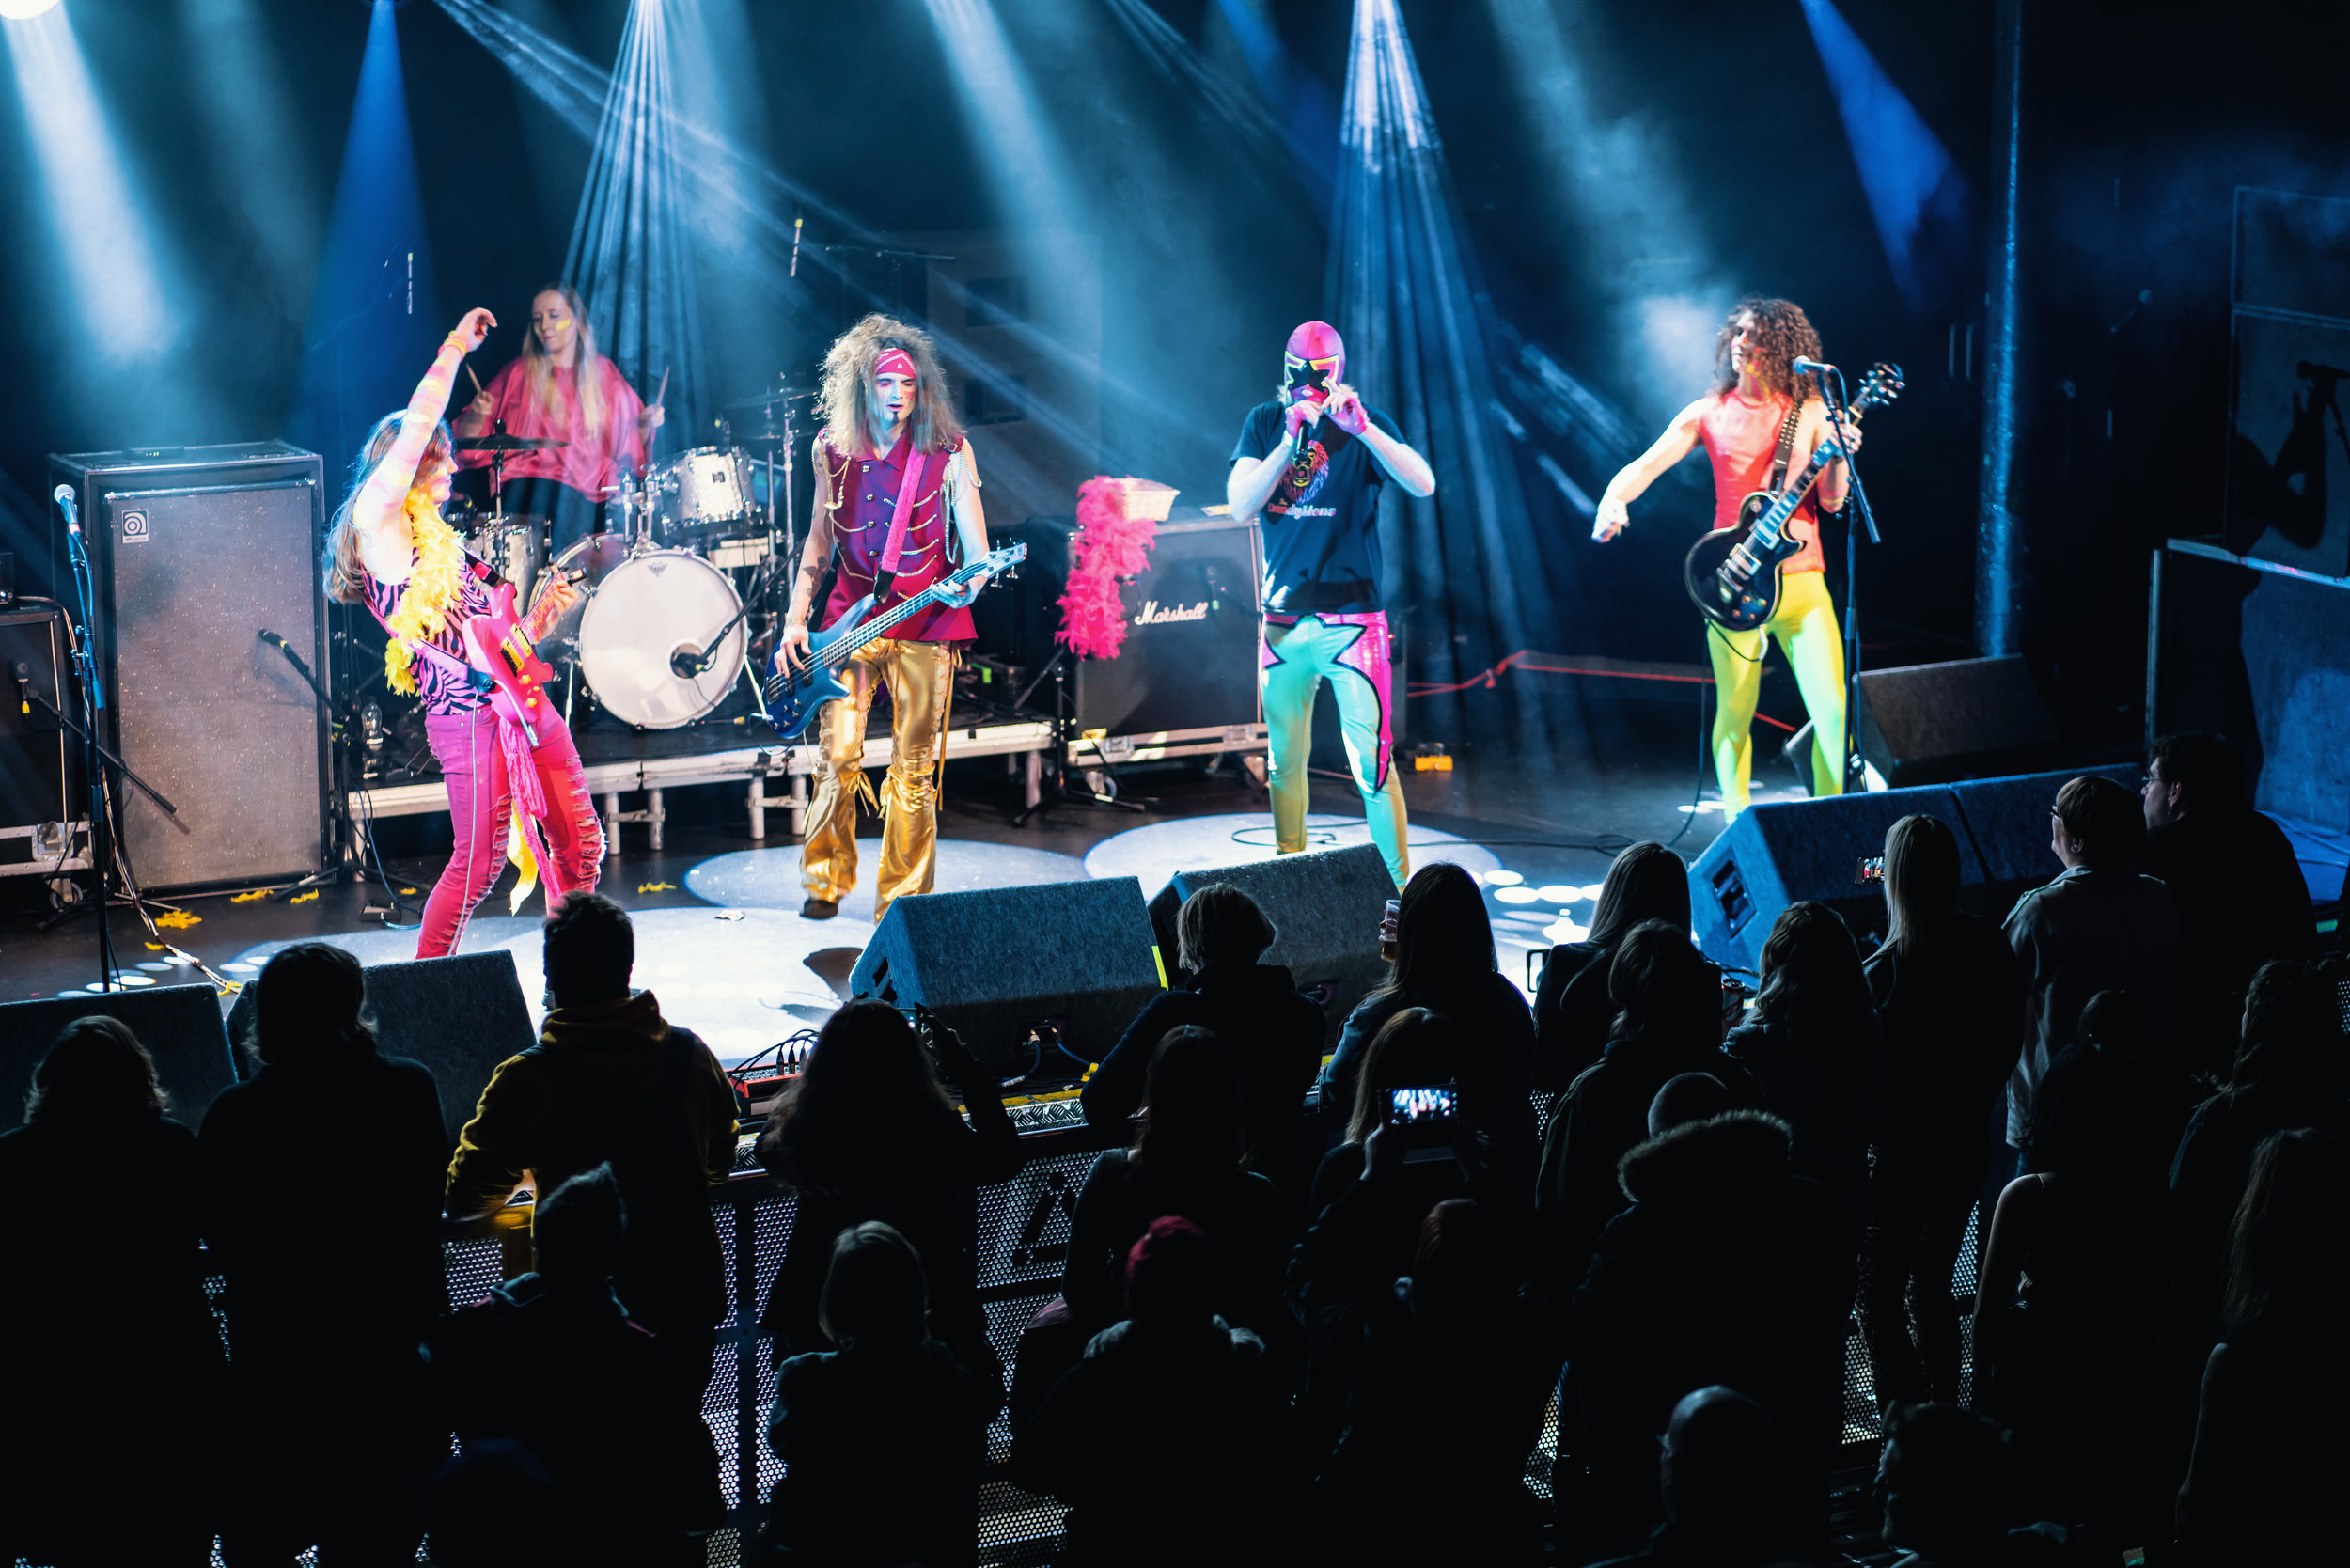 The Band Dandylions- these guys where so colourful and so much fun!